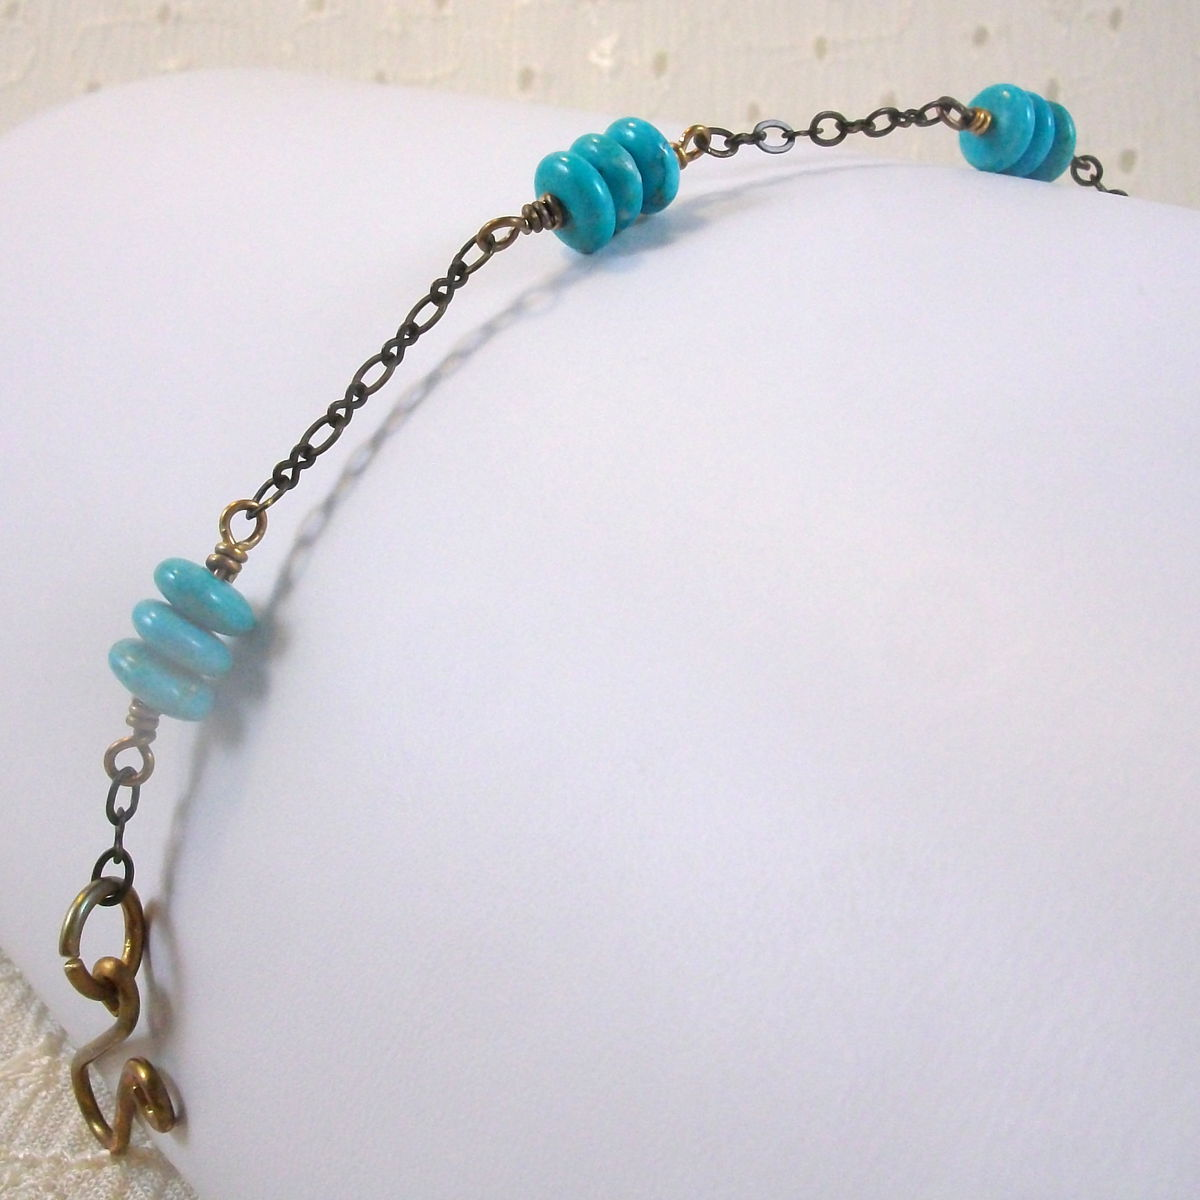 Brass Bracelet with Blue Magnesite Rondel Beads - product images  of